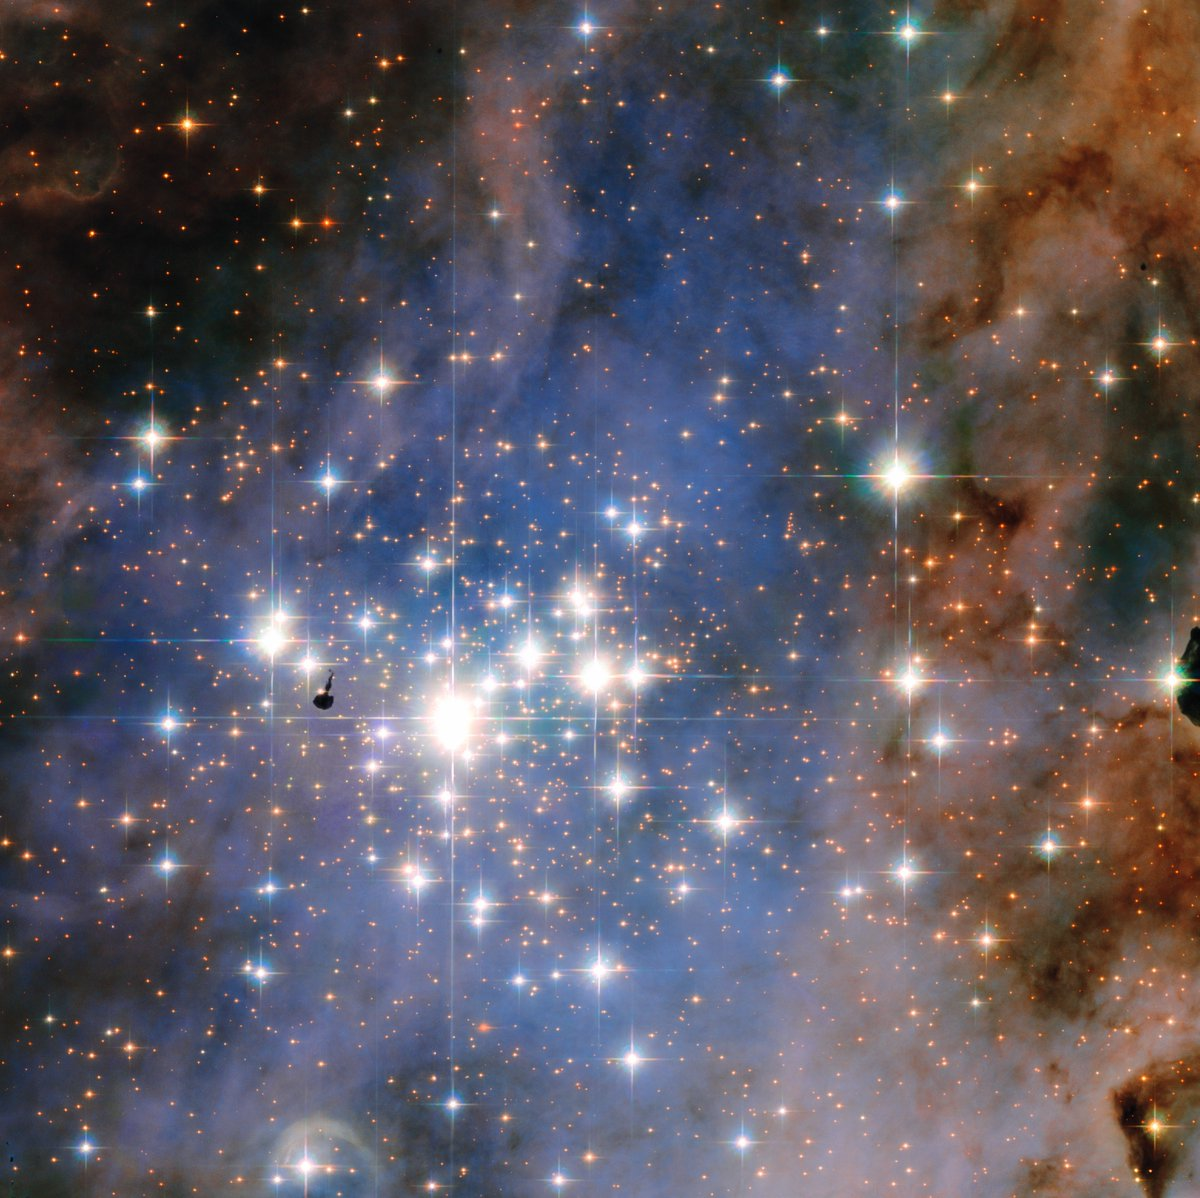 Astonishing: The star cluster Trumpler 14. One of the largest gatherings of hot, massive and bright stars in the Milky Way https://t.co/jQ2tFA5rLd